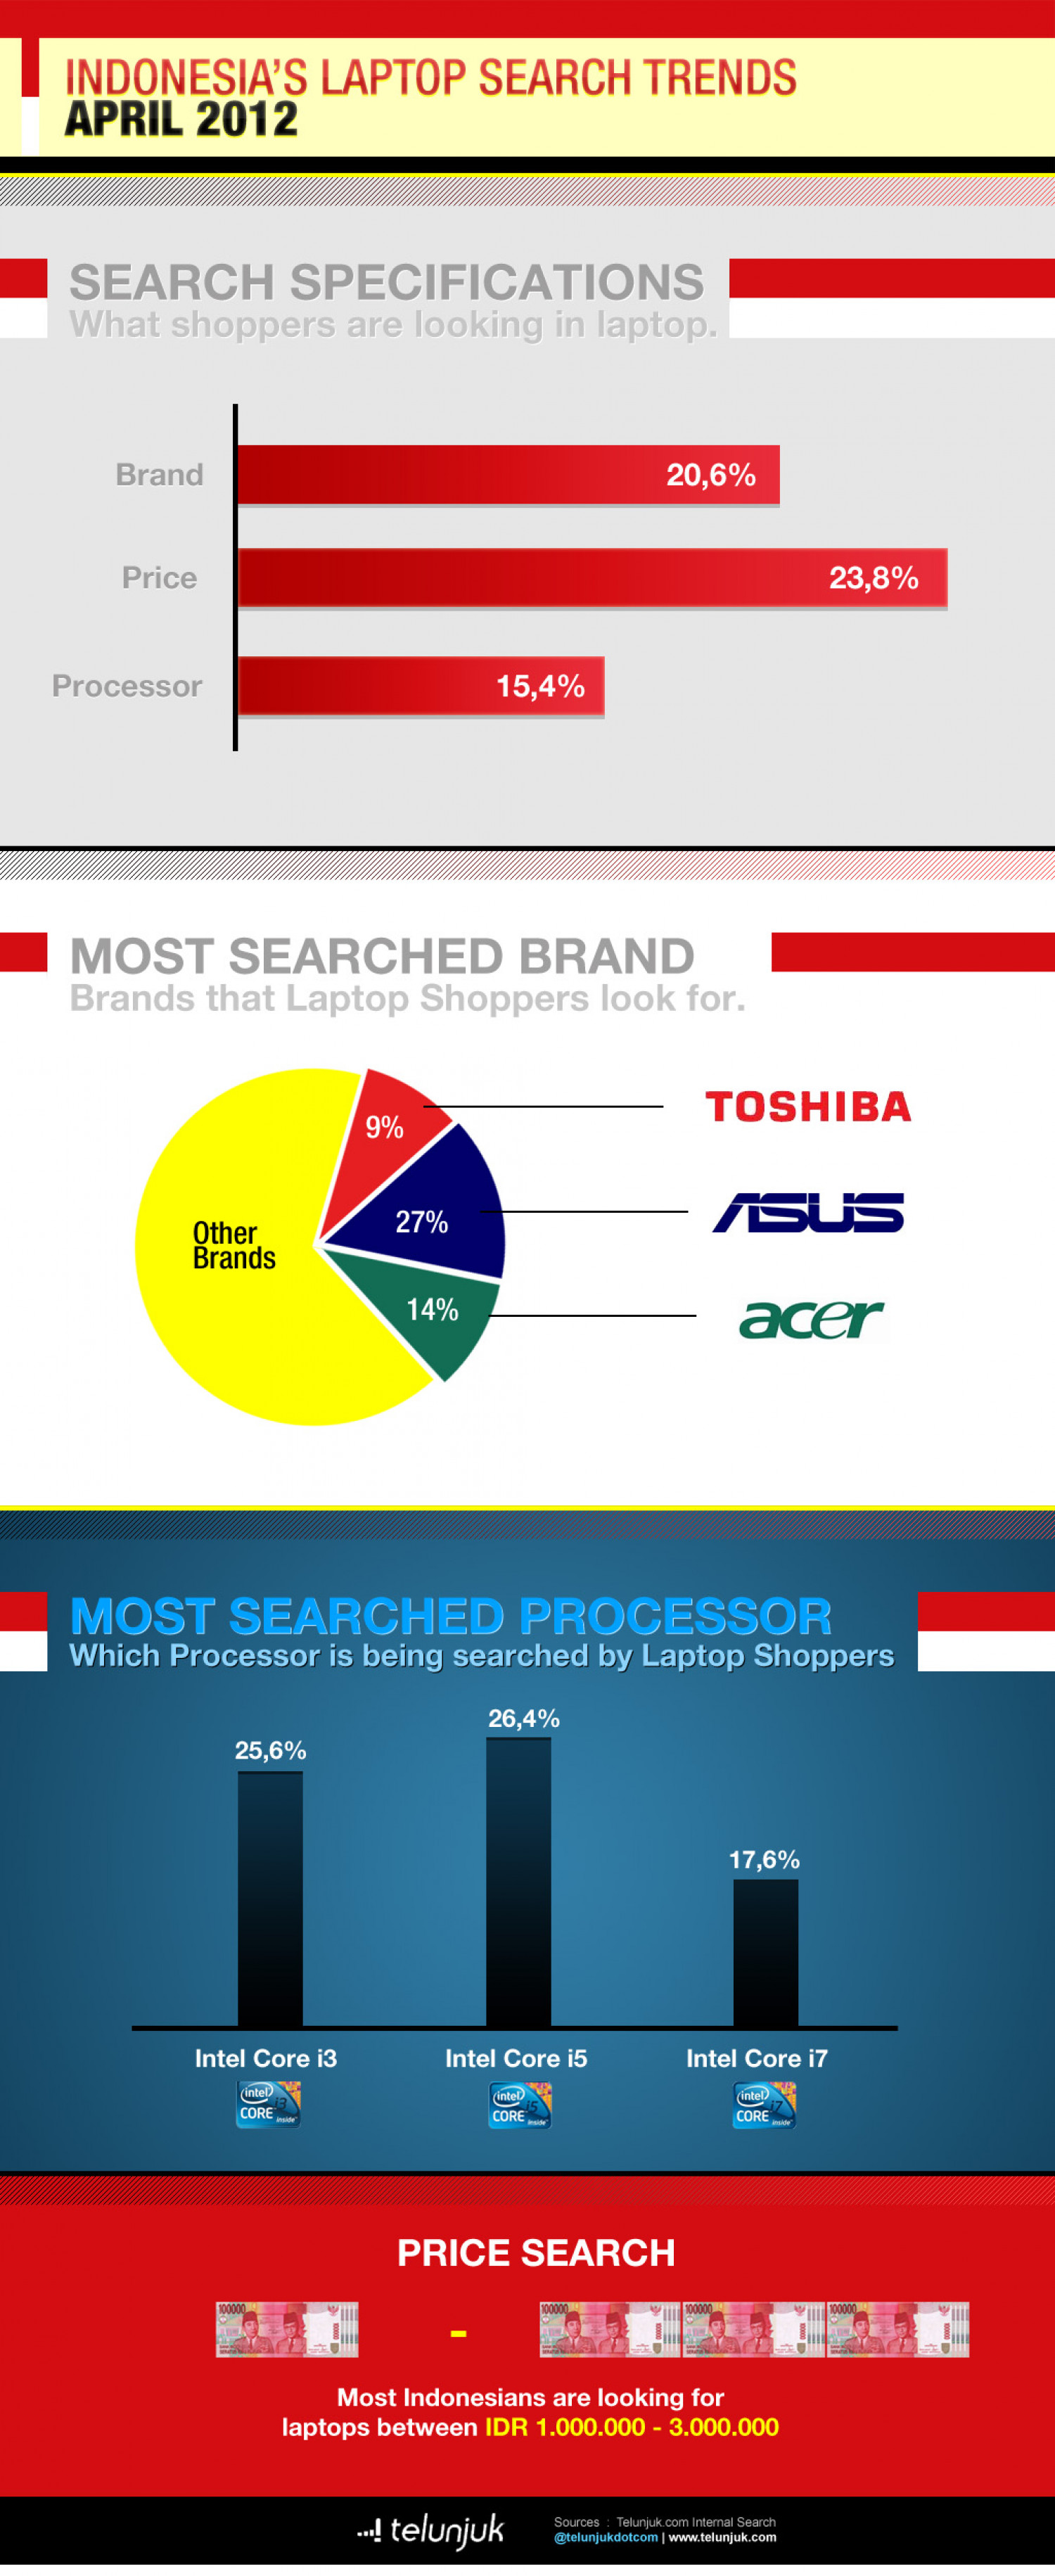 Indonesia Laptop Search Trends (April 2012) Infographic